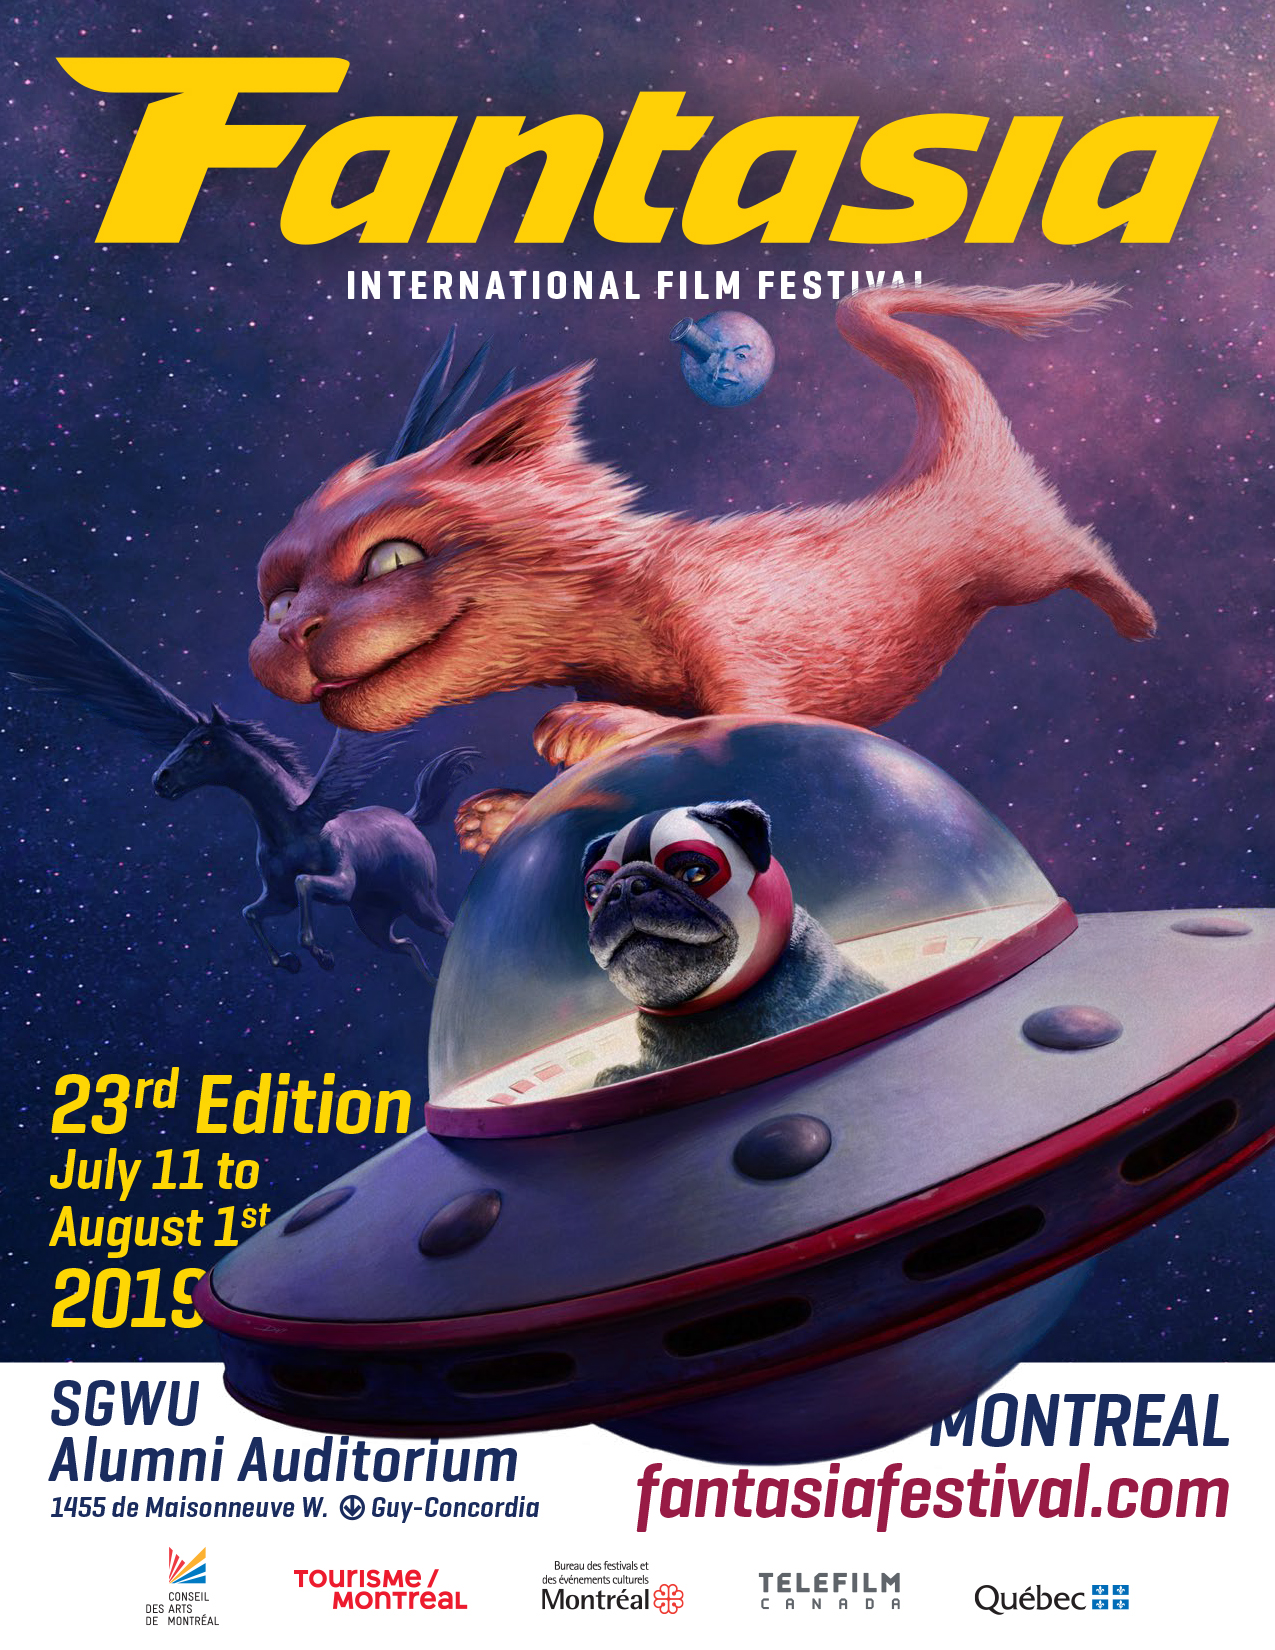 Fantasia International Film Festival